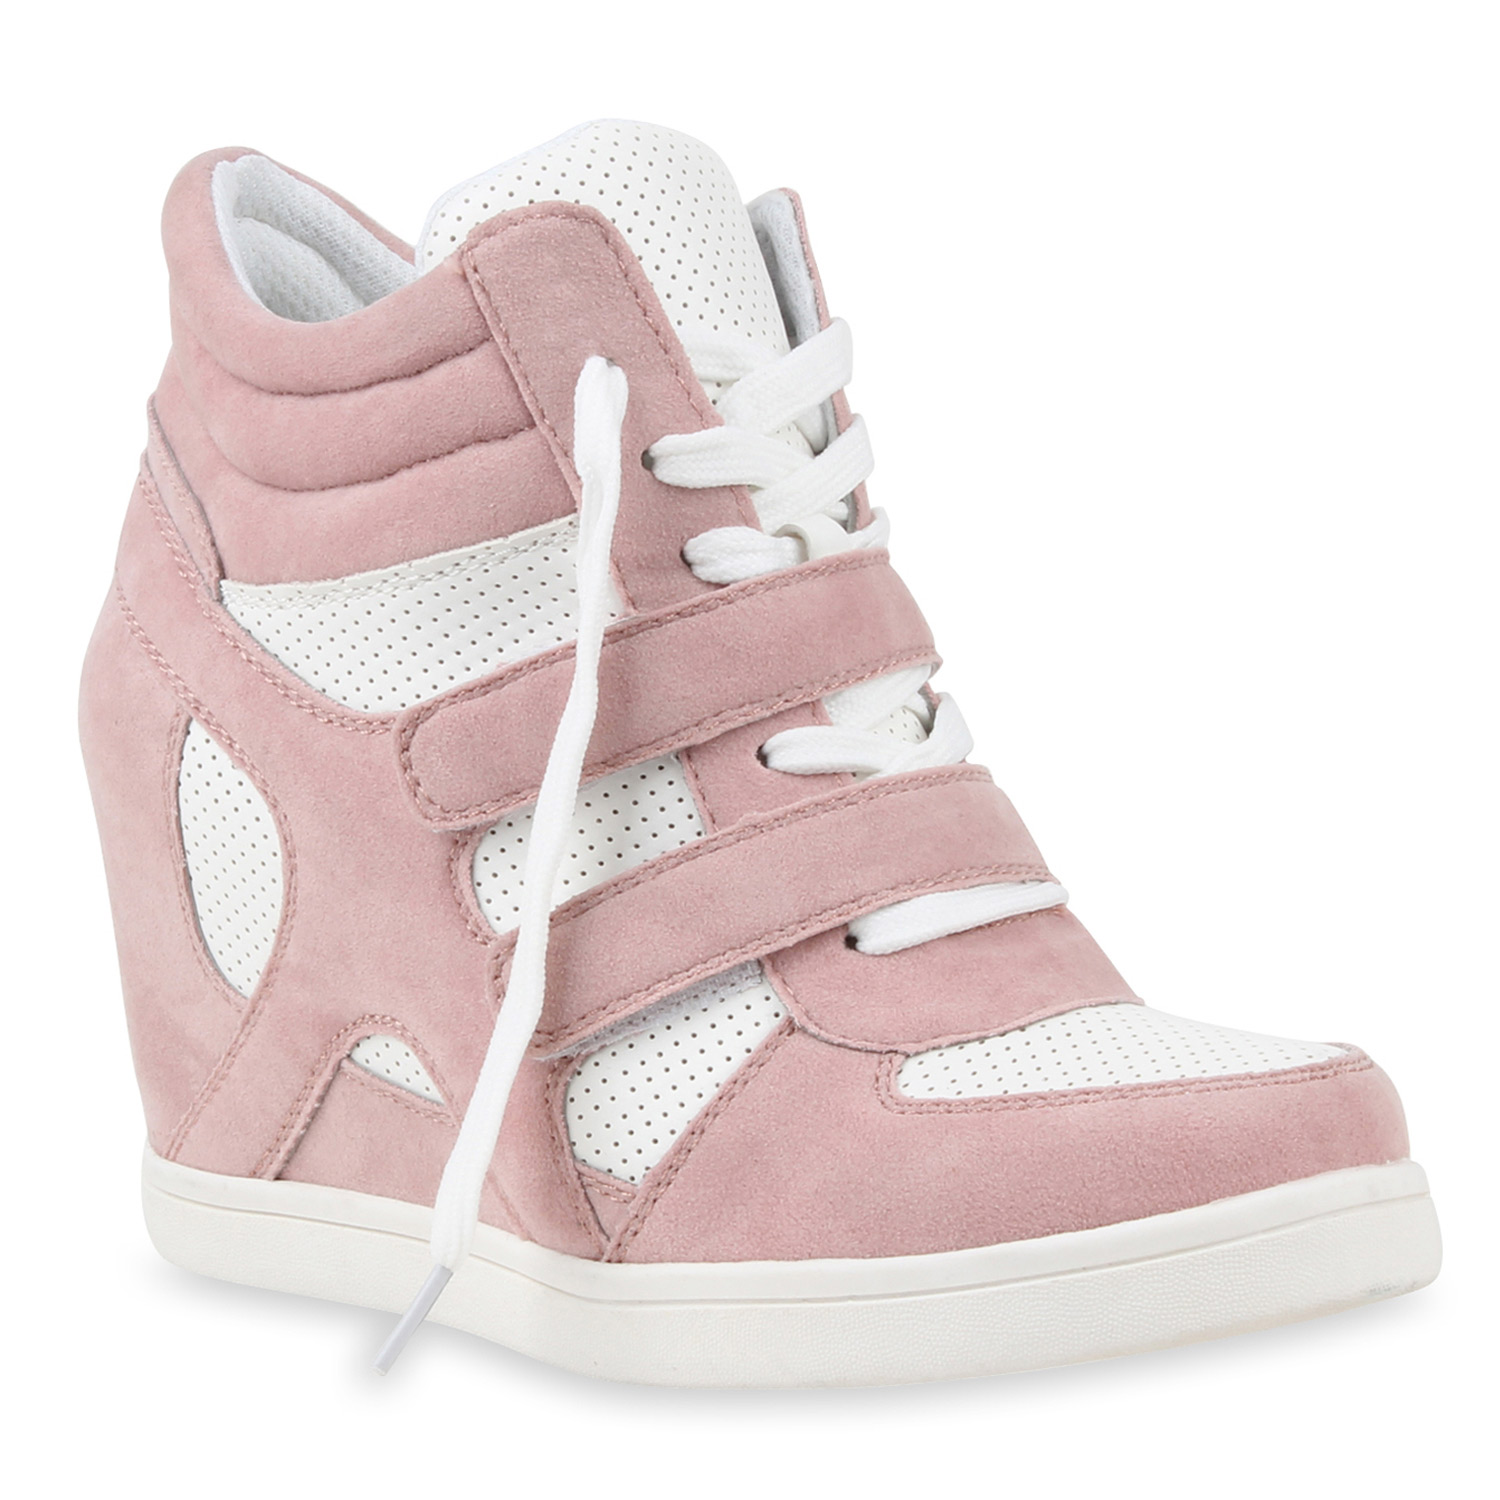 damen sneakers sneaker wedges lack keilabsatz schuhe 75204 ebay. Black Bedroom Furniture Sets. Home Design Ideas